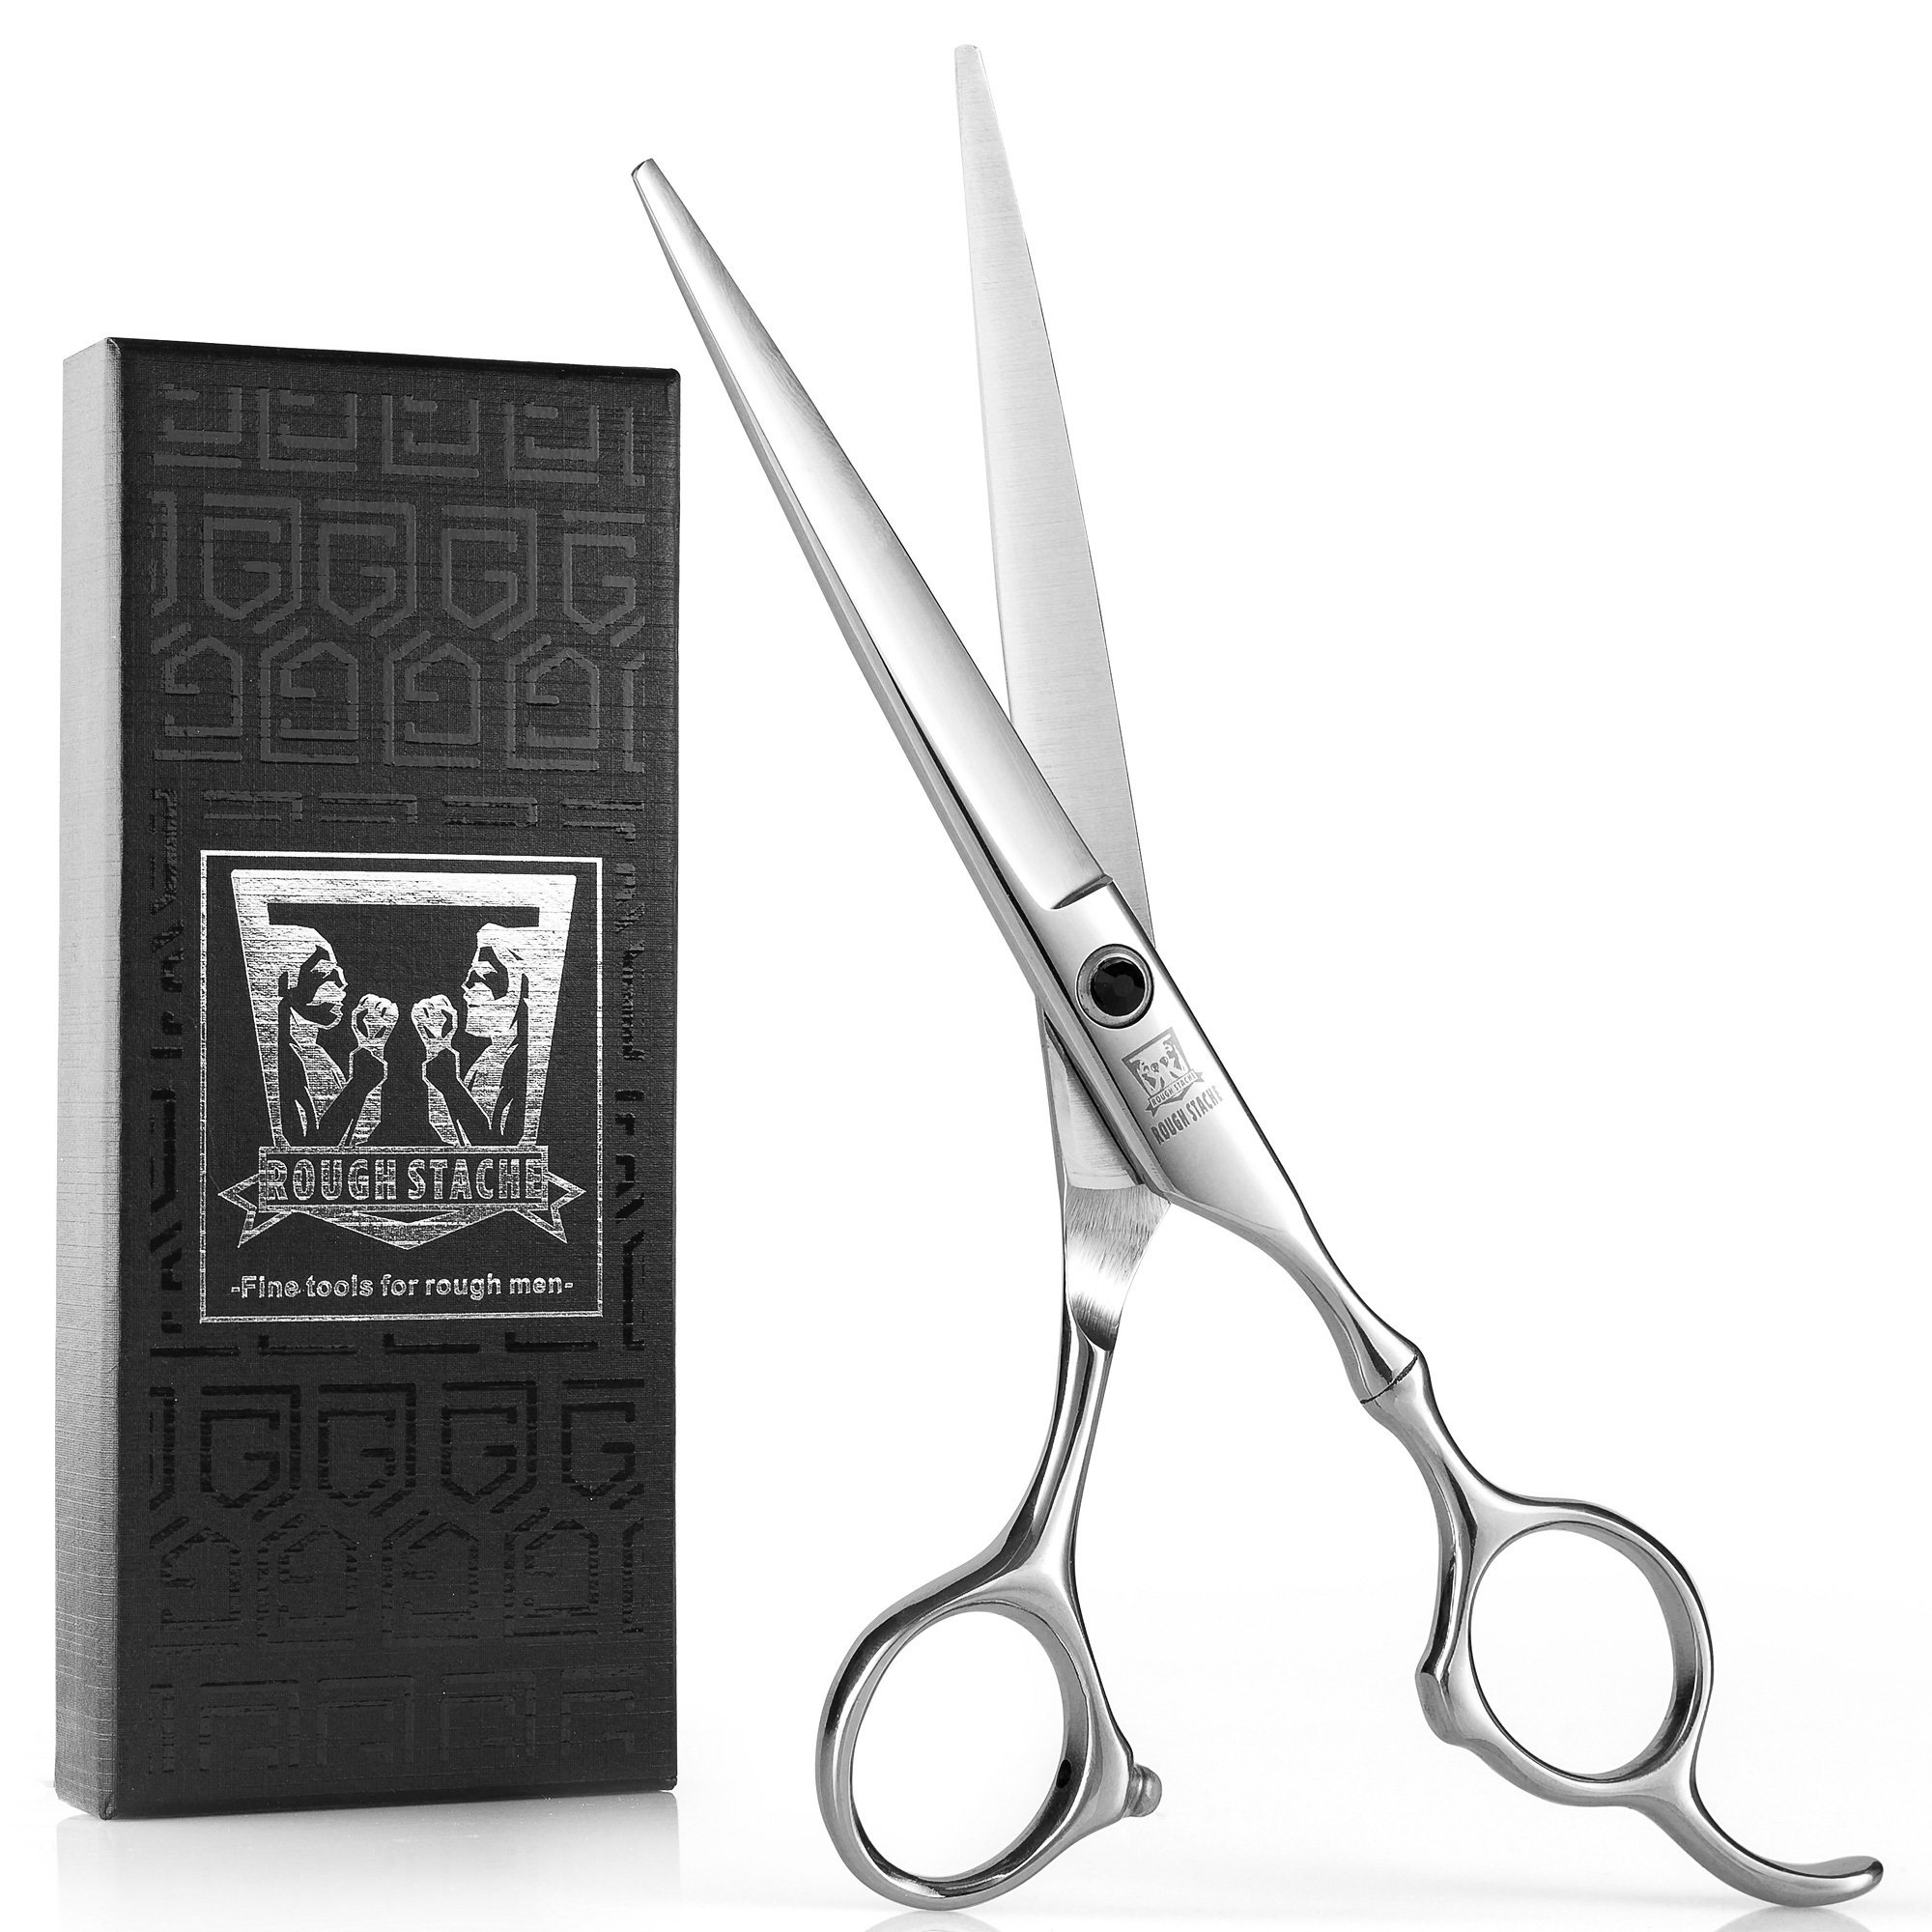 Professional Hair Scissors, Barber Hair Cutting Scissors, 6.5-inch Razor Edge Hair Cutting Shears for Salon, Made from Stainless Steel with Fine Adjustment Screw by Rough Stache